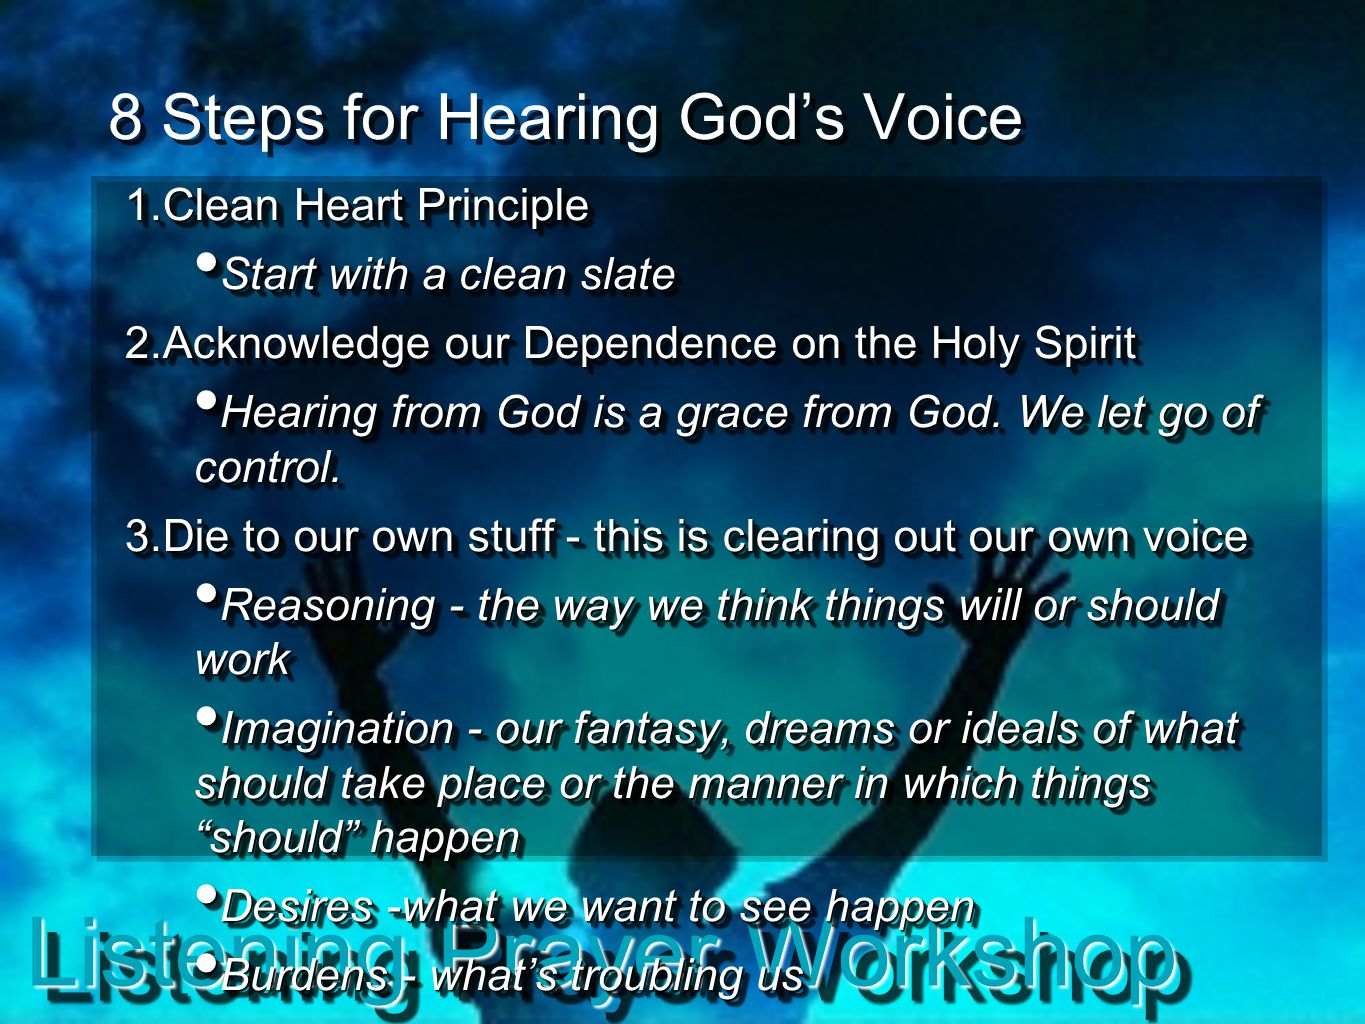 Listening Prayer Workshop 8 Steps for Hearing God's Voice 1. Clean Heart Principle Start with a clean slate Start with a clean slate 2. Acknowledge ou